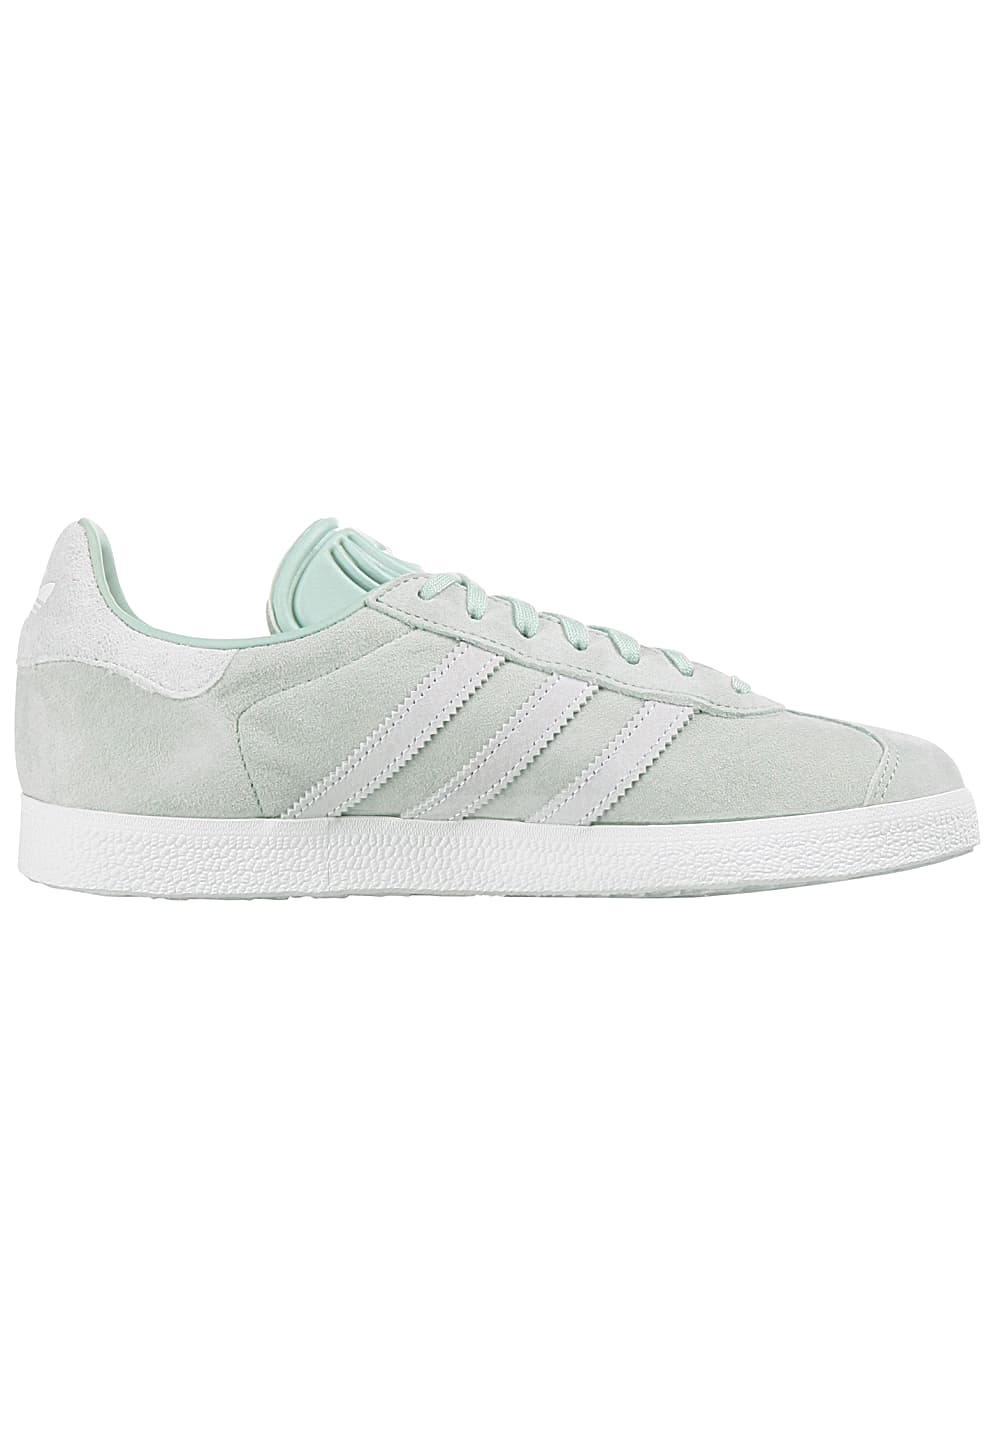 new styles 4ea12 a21d9 adidas Originals Gazelle - Sneaker für Damen - Grün - Planet Sports